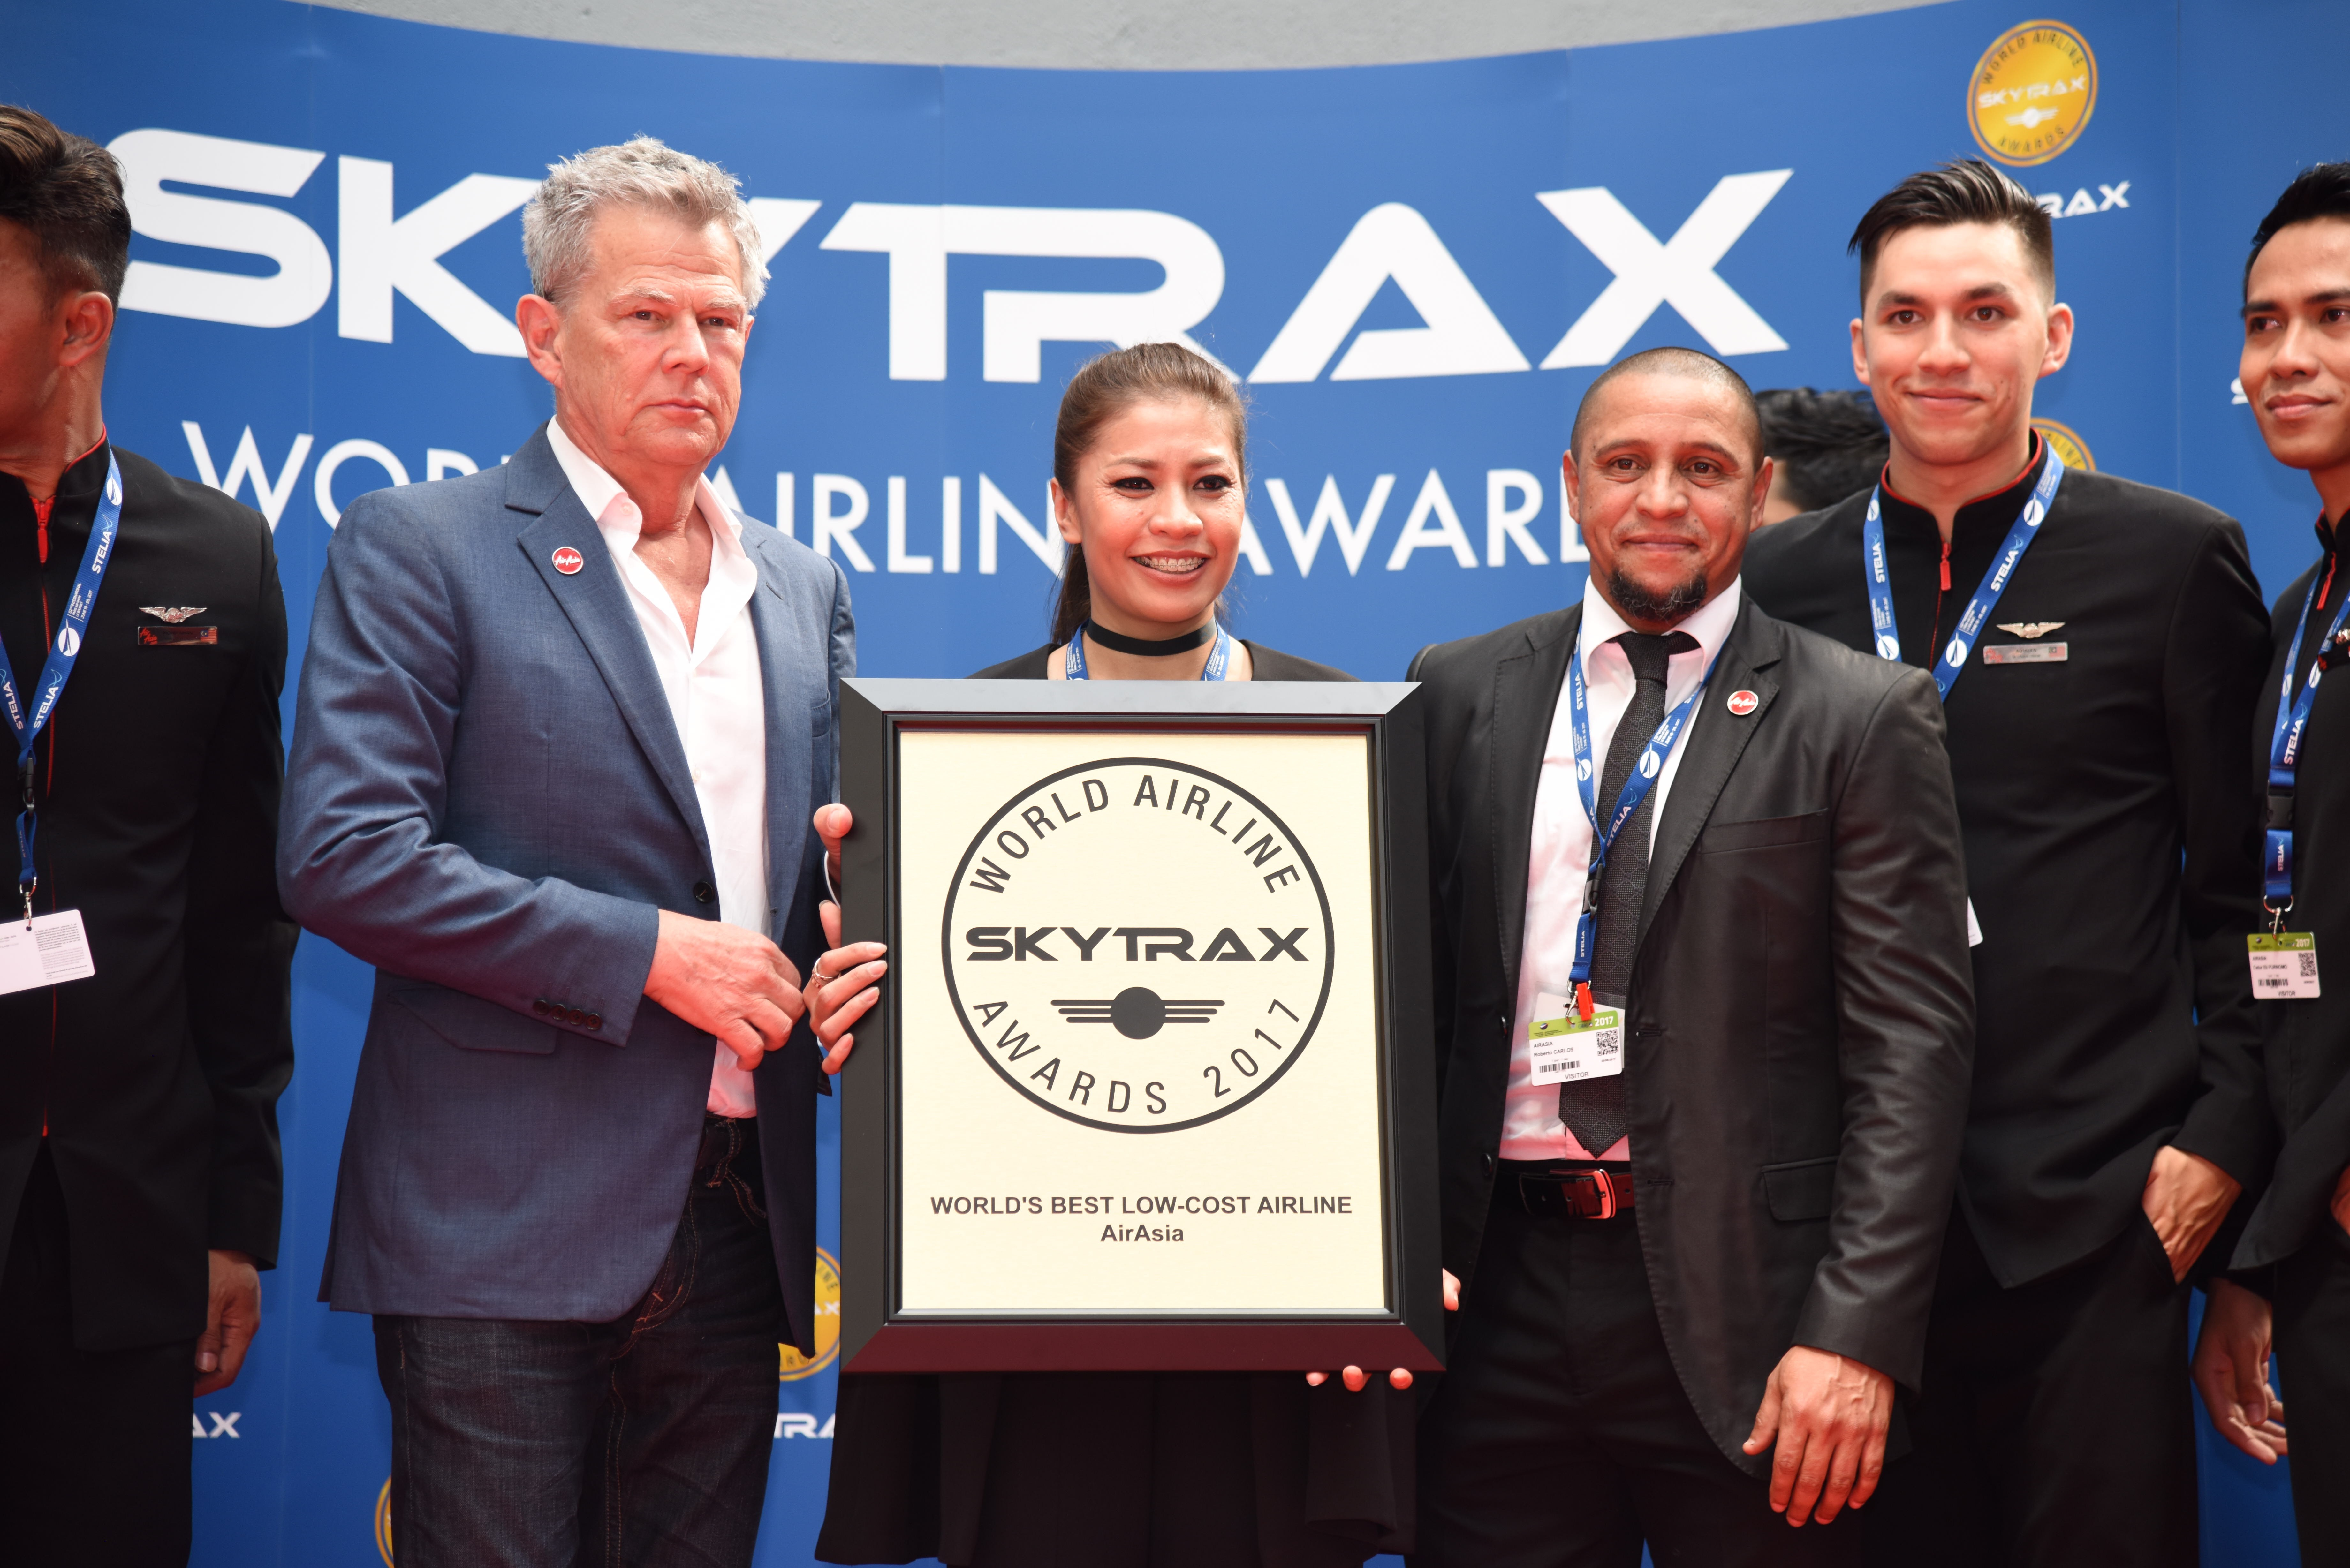 L-R: David Foster, Suhaila Hassan and Roberto Carlos at Skytrax (Photo: Business Wire)